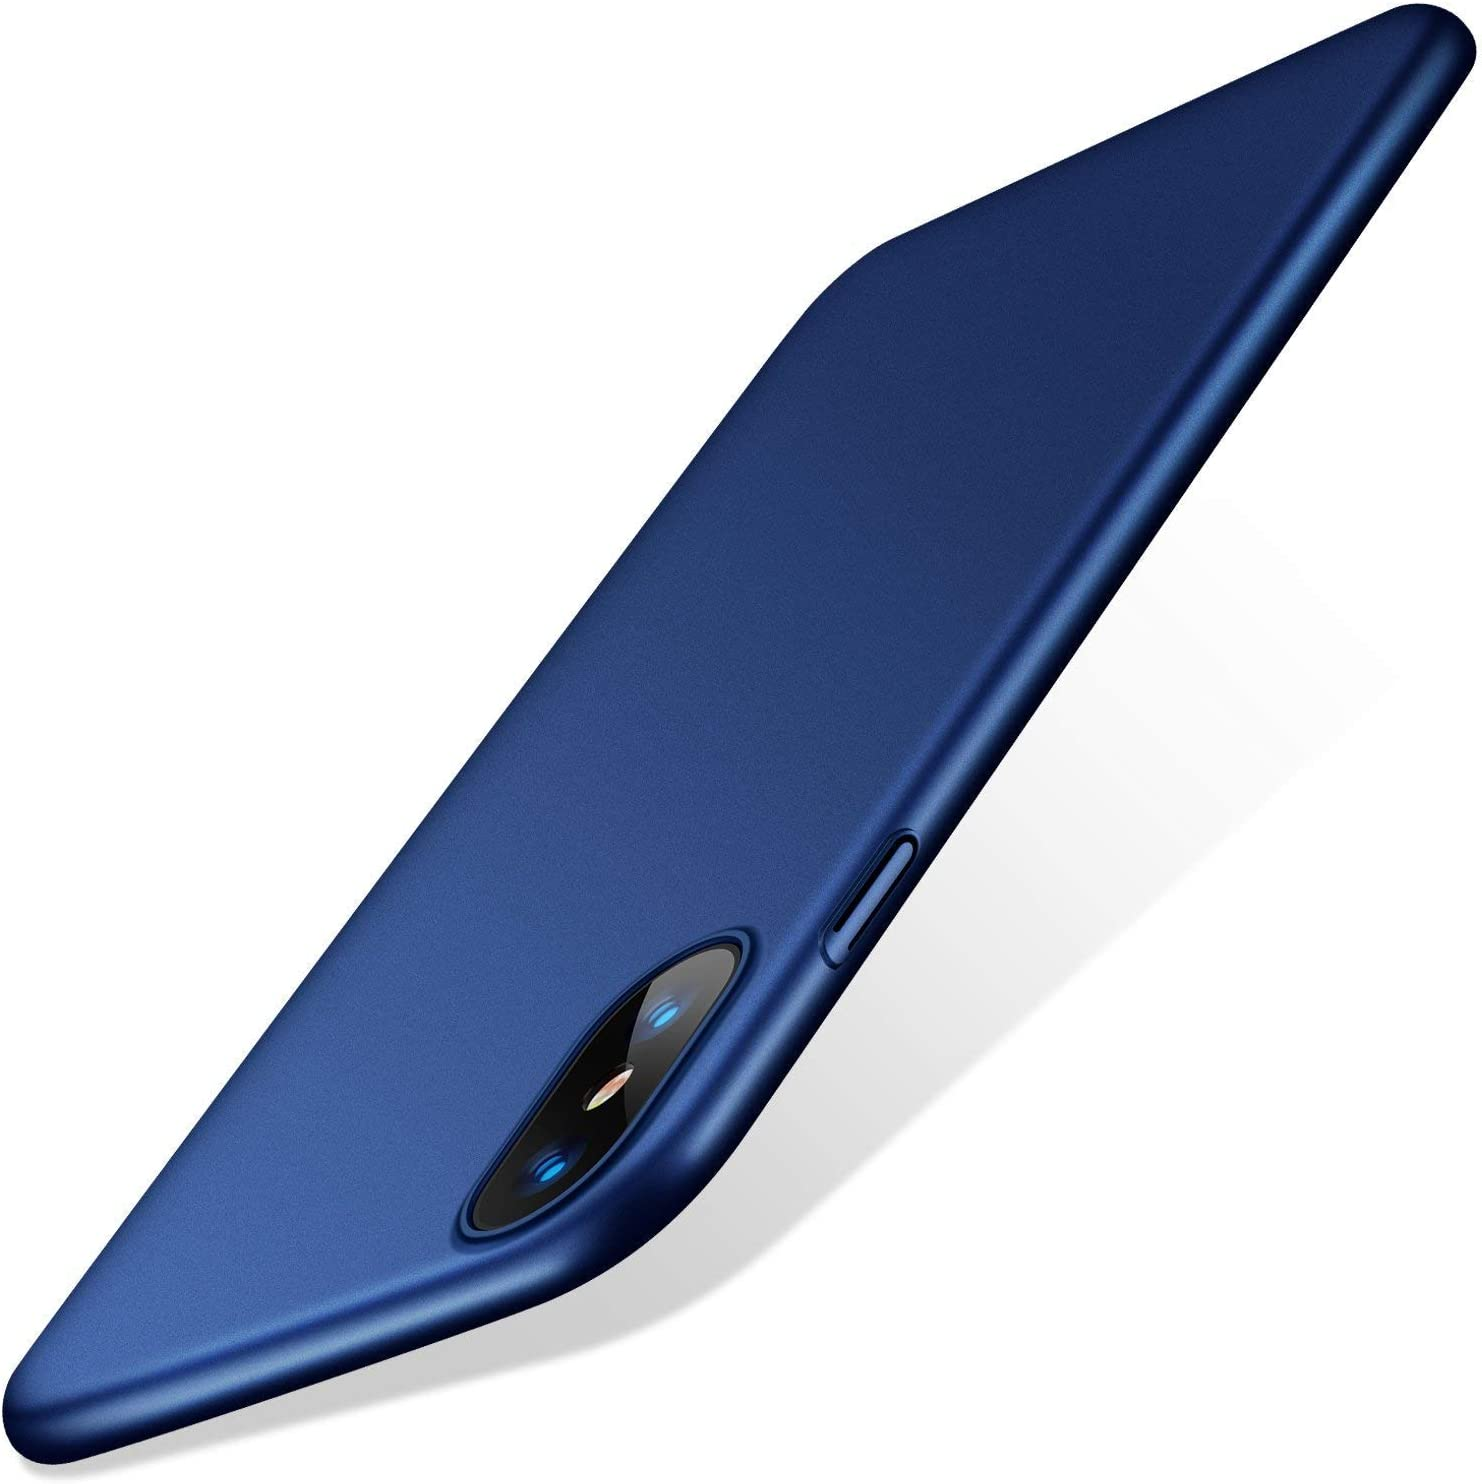 TORRAS Slim Fit iPhone Xs Case/iPhone X Case, Hard Plastic PC Super Thin Mobile Phone Cover Case with Matte Finish Coating Grip Compatible with iPhone X/iPhone Xs 5.8 inch, Navy Blue